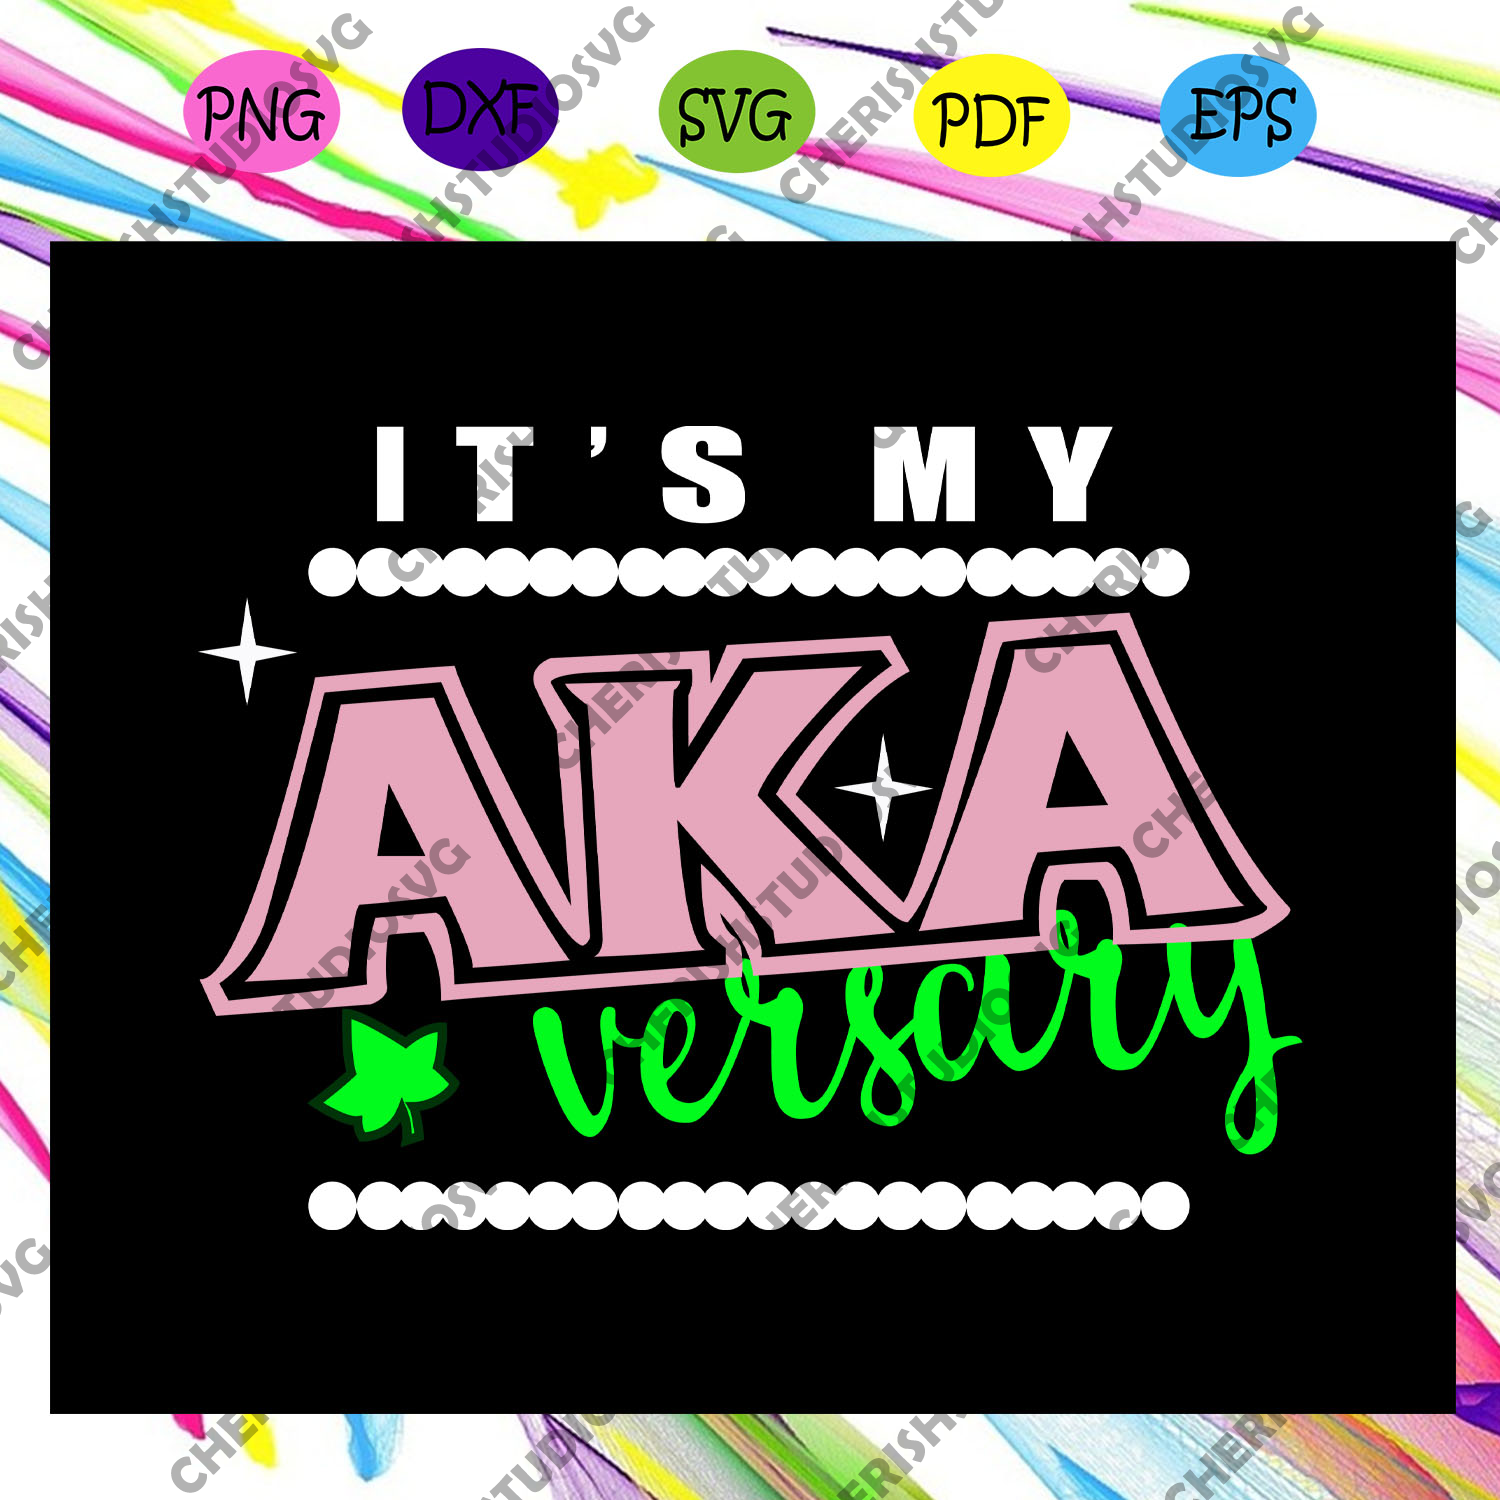 It's my aka versary, aka sorority gift, aka sorority svg, Aka svg, aka shirt, aka sorority, alpha kappa alpha svg, alpha kappa alpha shirt, alpha kappa alpha, Files For Silhouette, Files For Cricut, SVG, DXF, EPS, PNG, Instant Download